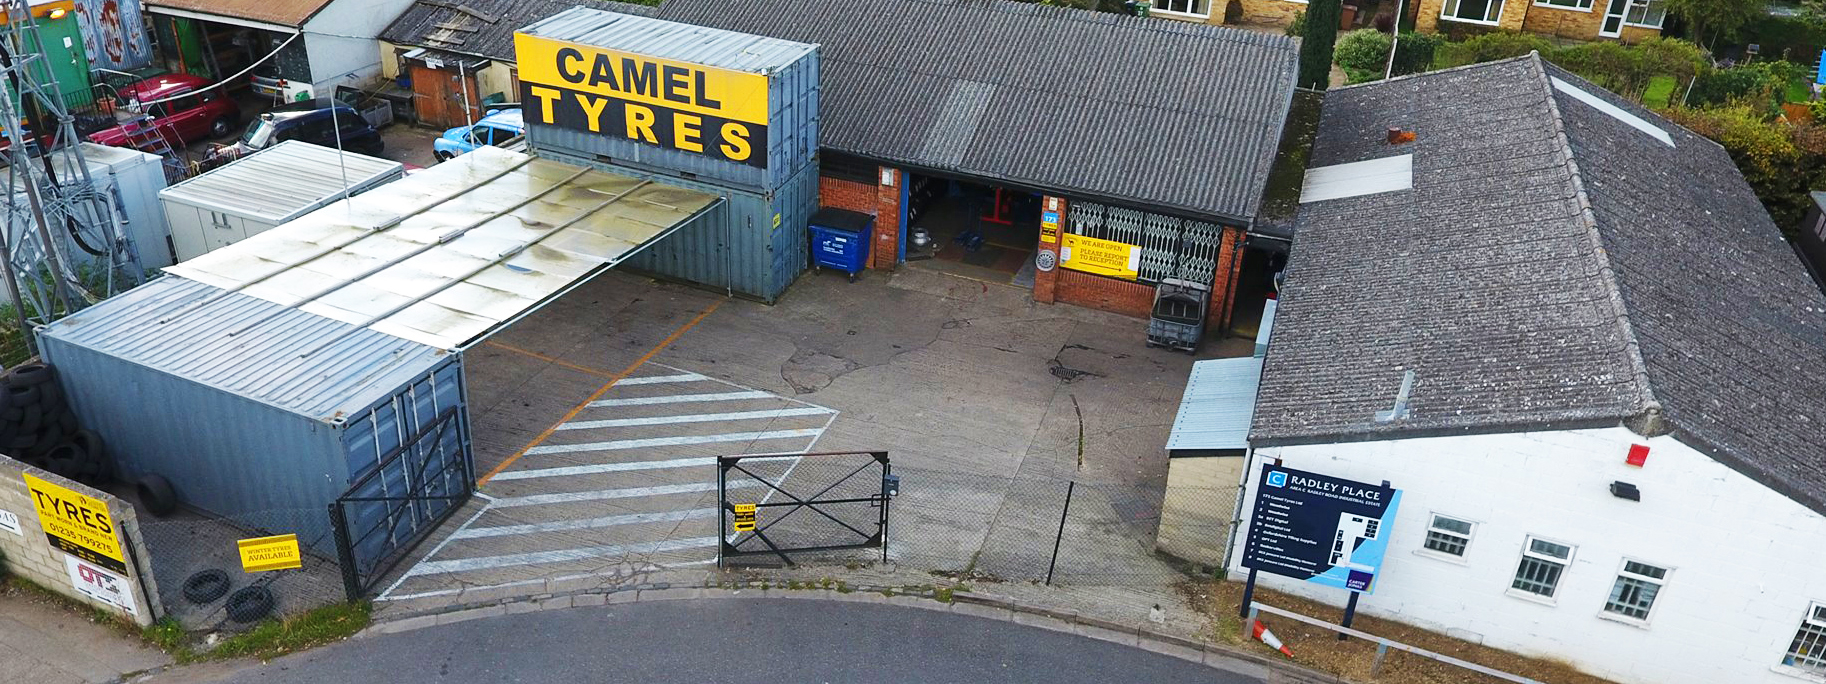 Overhead view of Camel Tyres in Abingdon, Oxfordshire - New Tyres Abingdon - Order Tyres Online